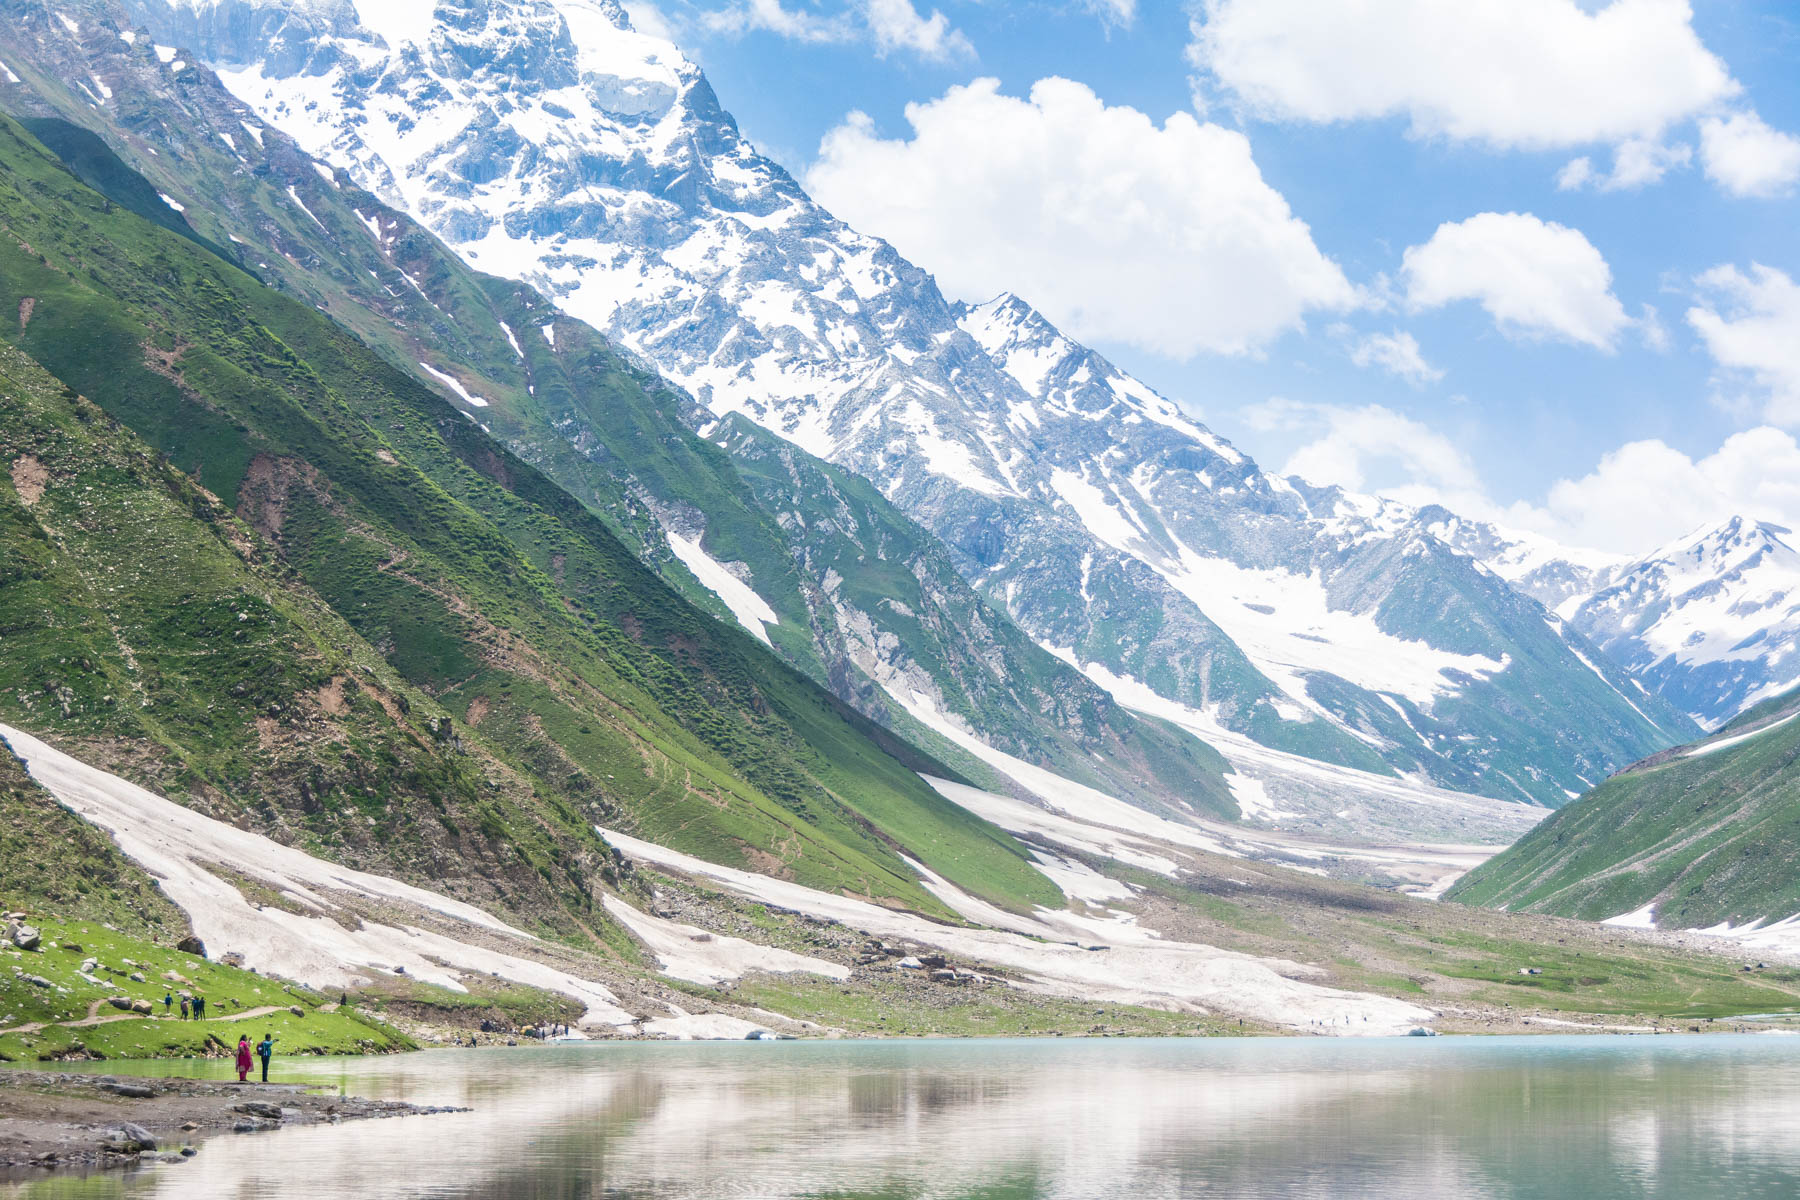 Saif al Mulk lake near Naran, Pakistan